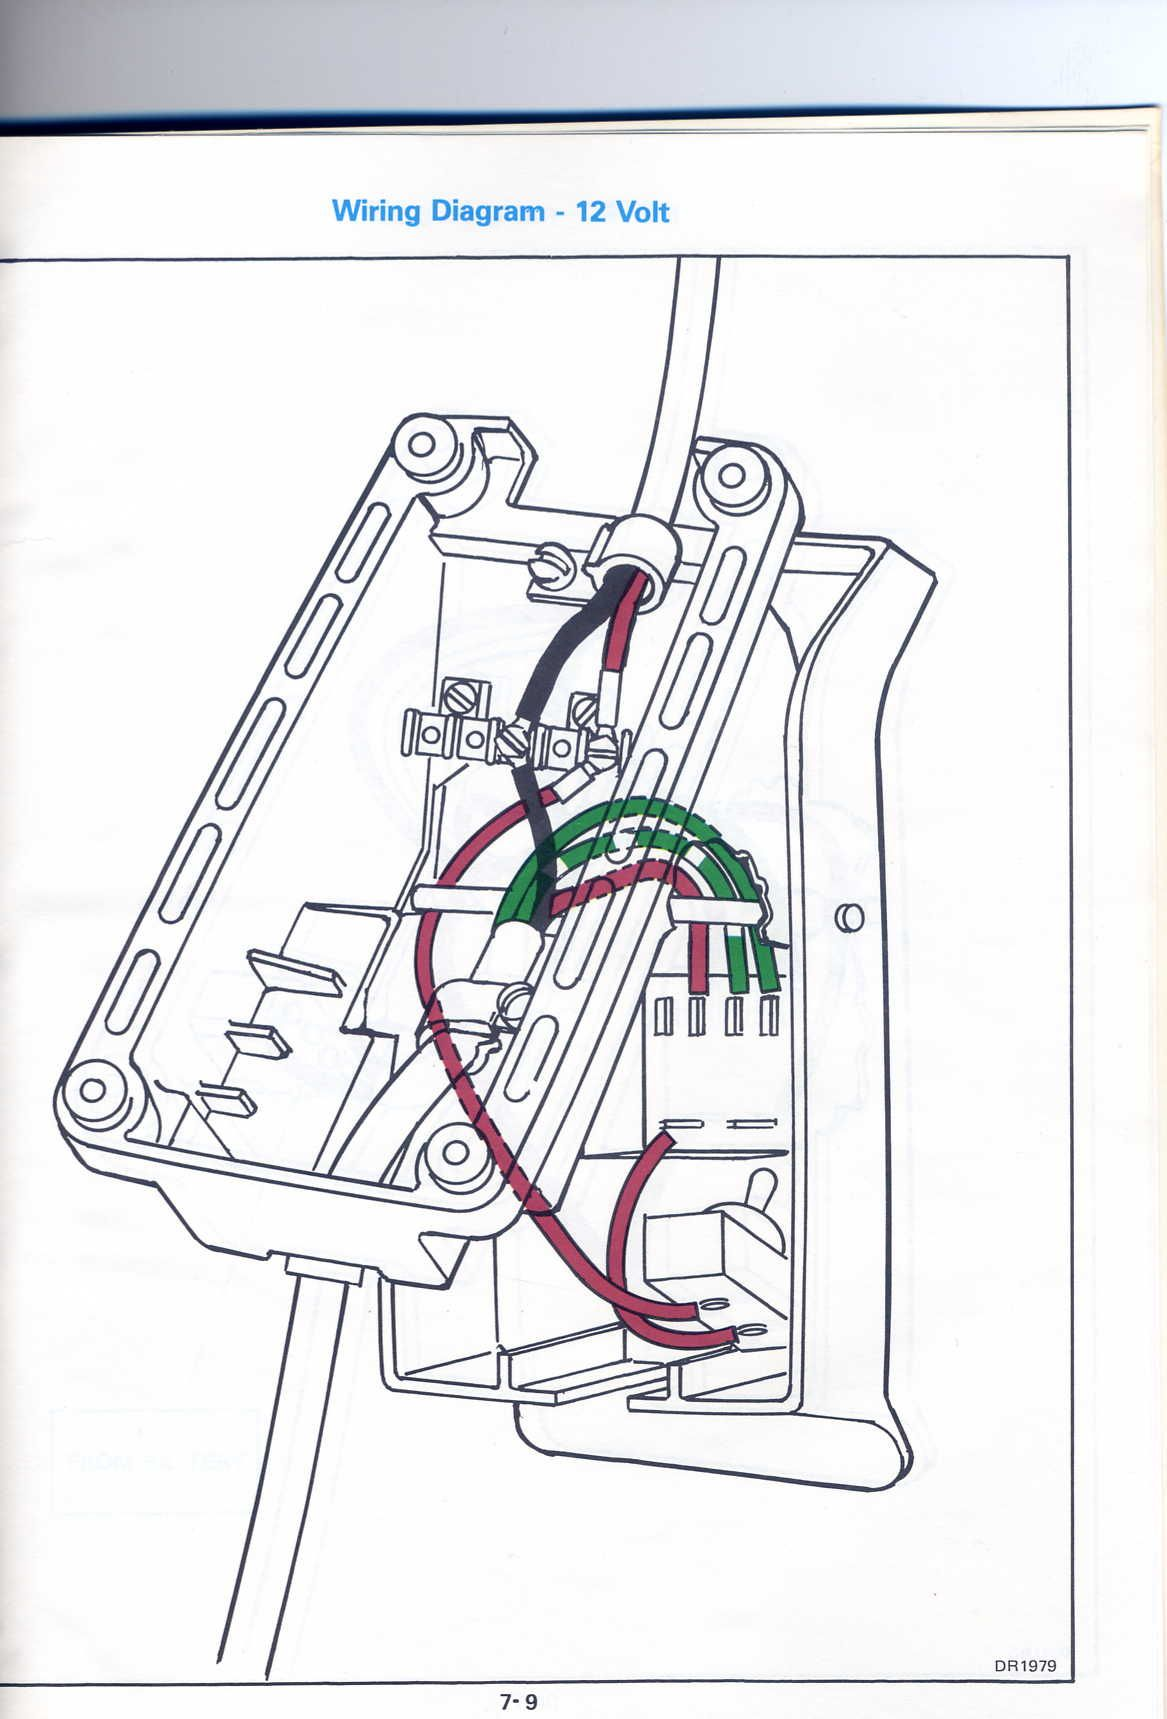 motorguide trolling motor wiring diagram trying to repair a friends Motorguide Trolling Motor Parts motorguide trolling motor wiring diagram trying to repair a friends 1986 johnson trolling motor model does anyone have a wiring diagram ,design